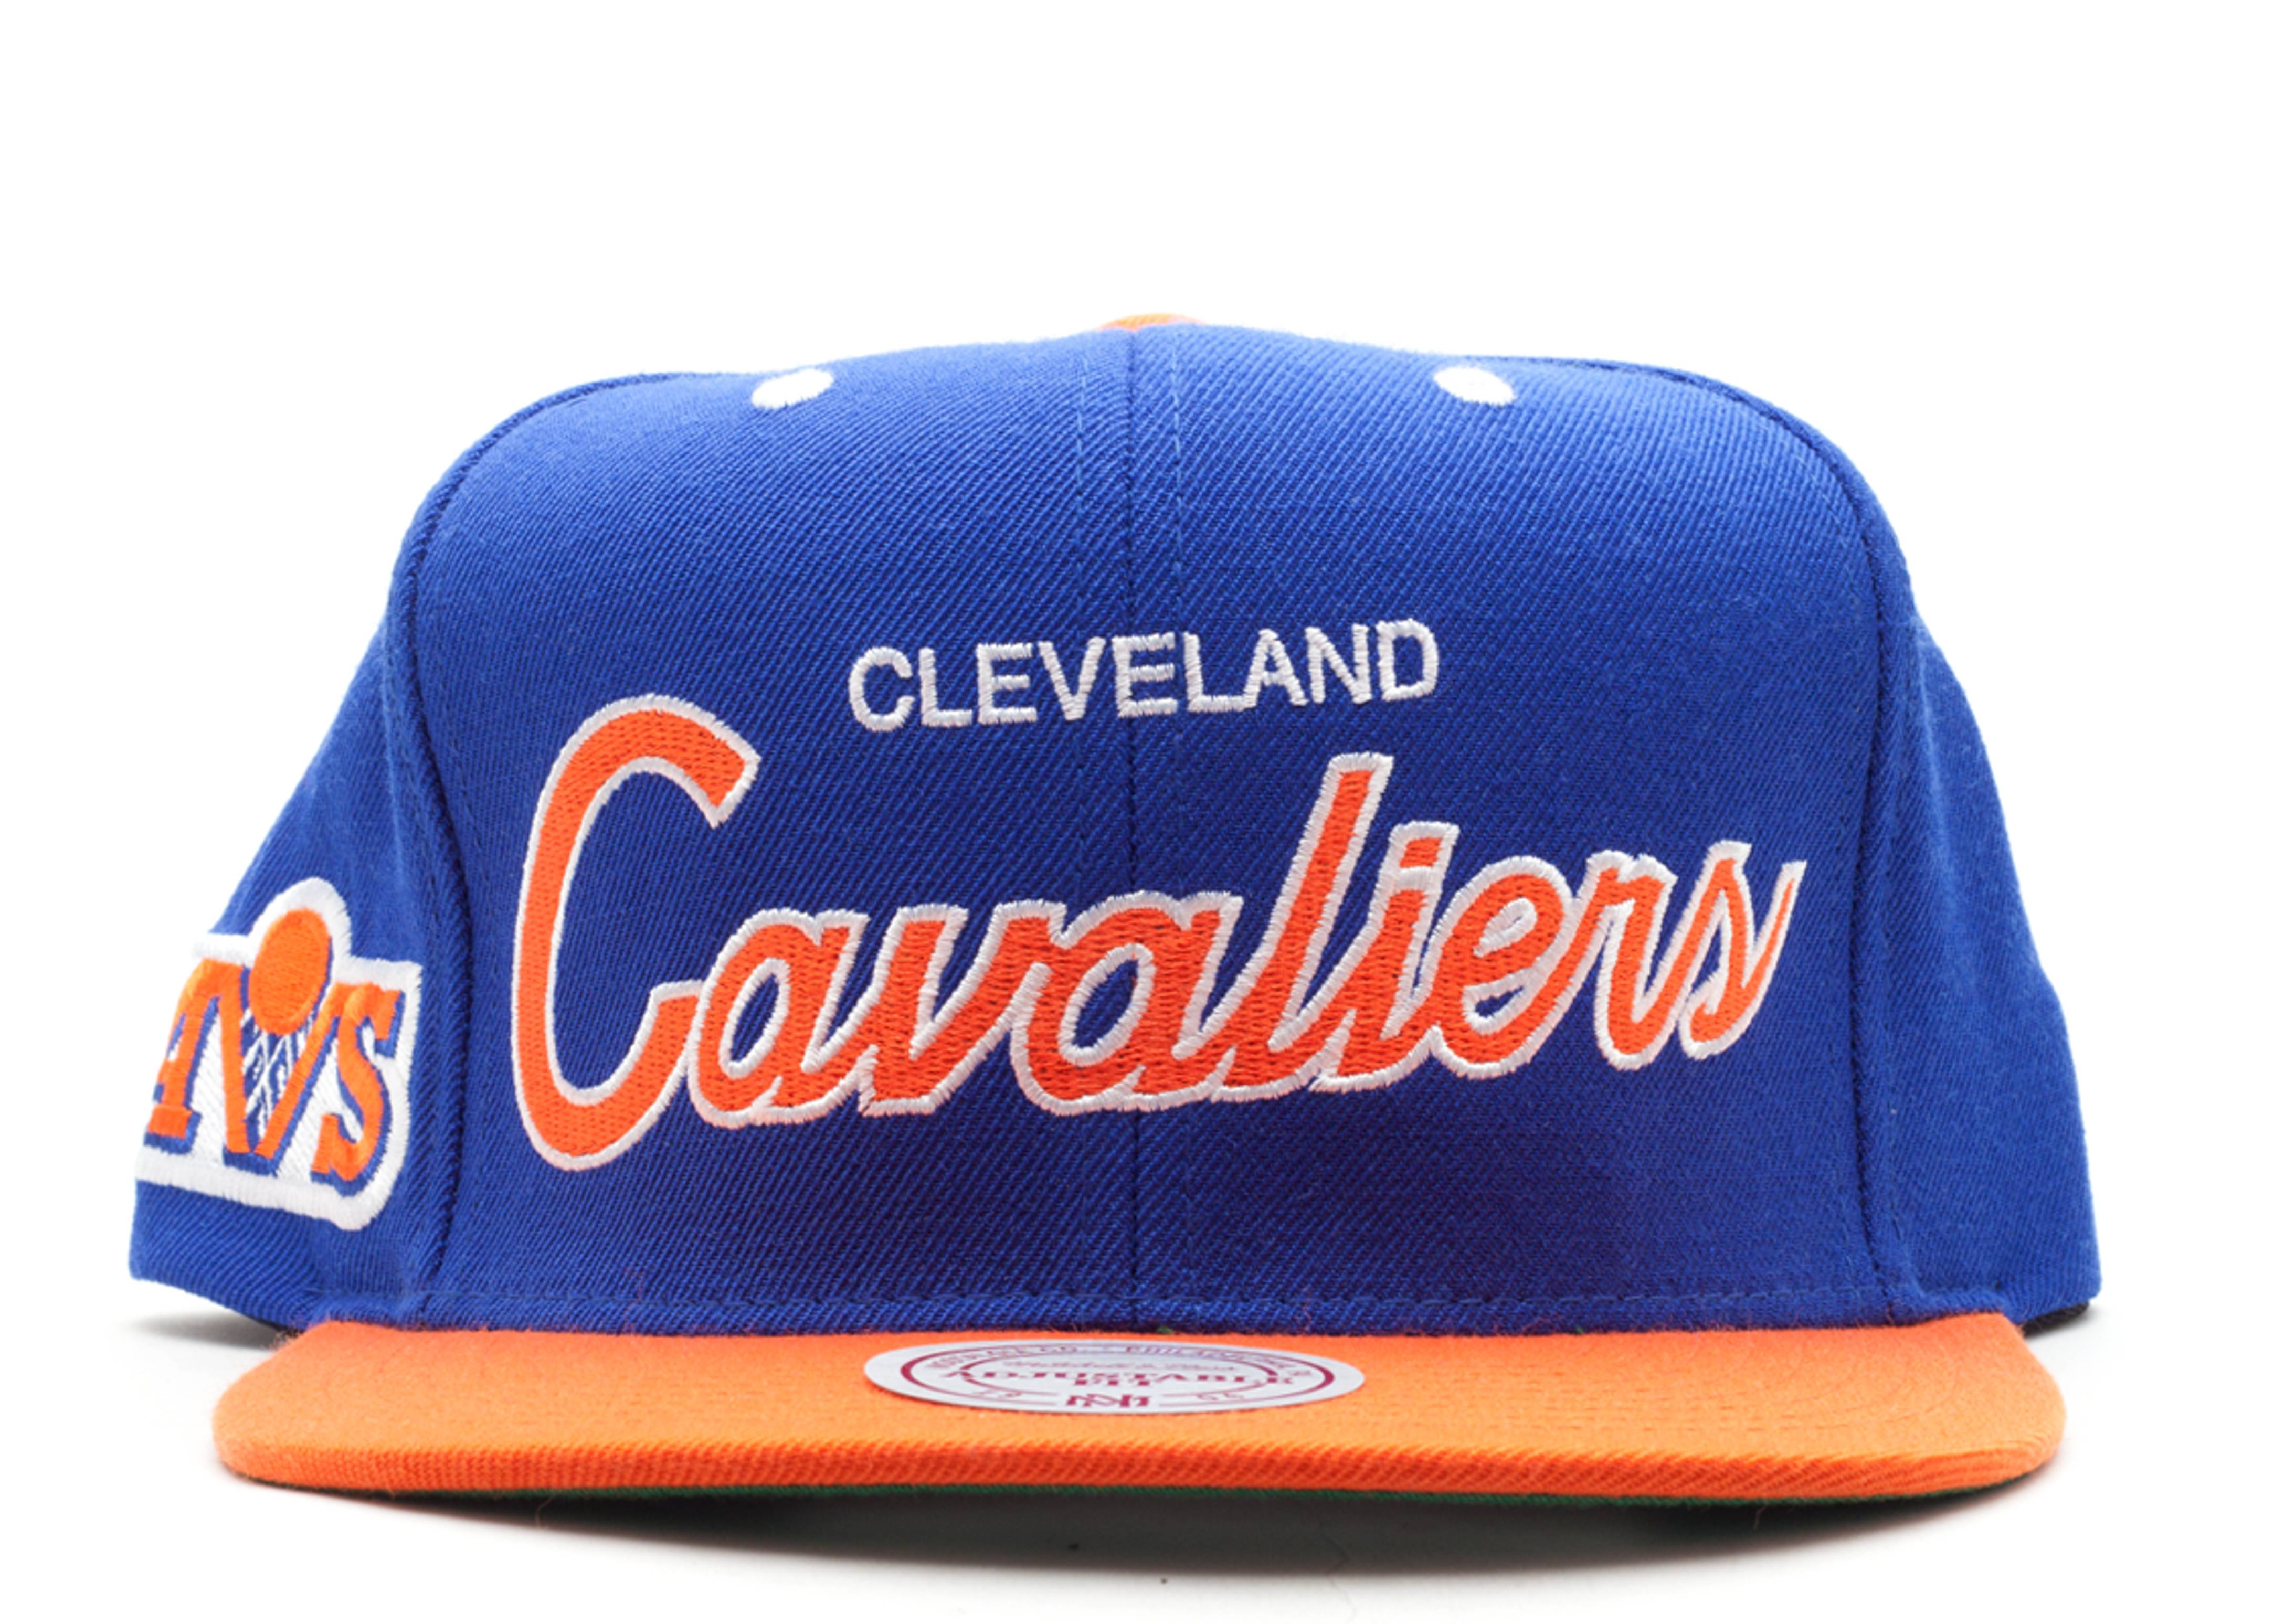 best sneakers 494ad ec8d2 Cleveland Cavaliers Snap-back - Mitchell & Ness ...